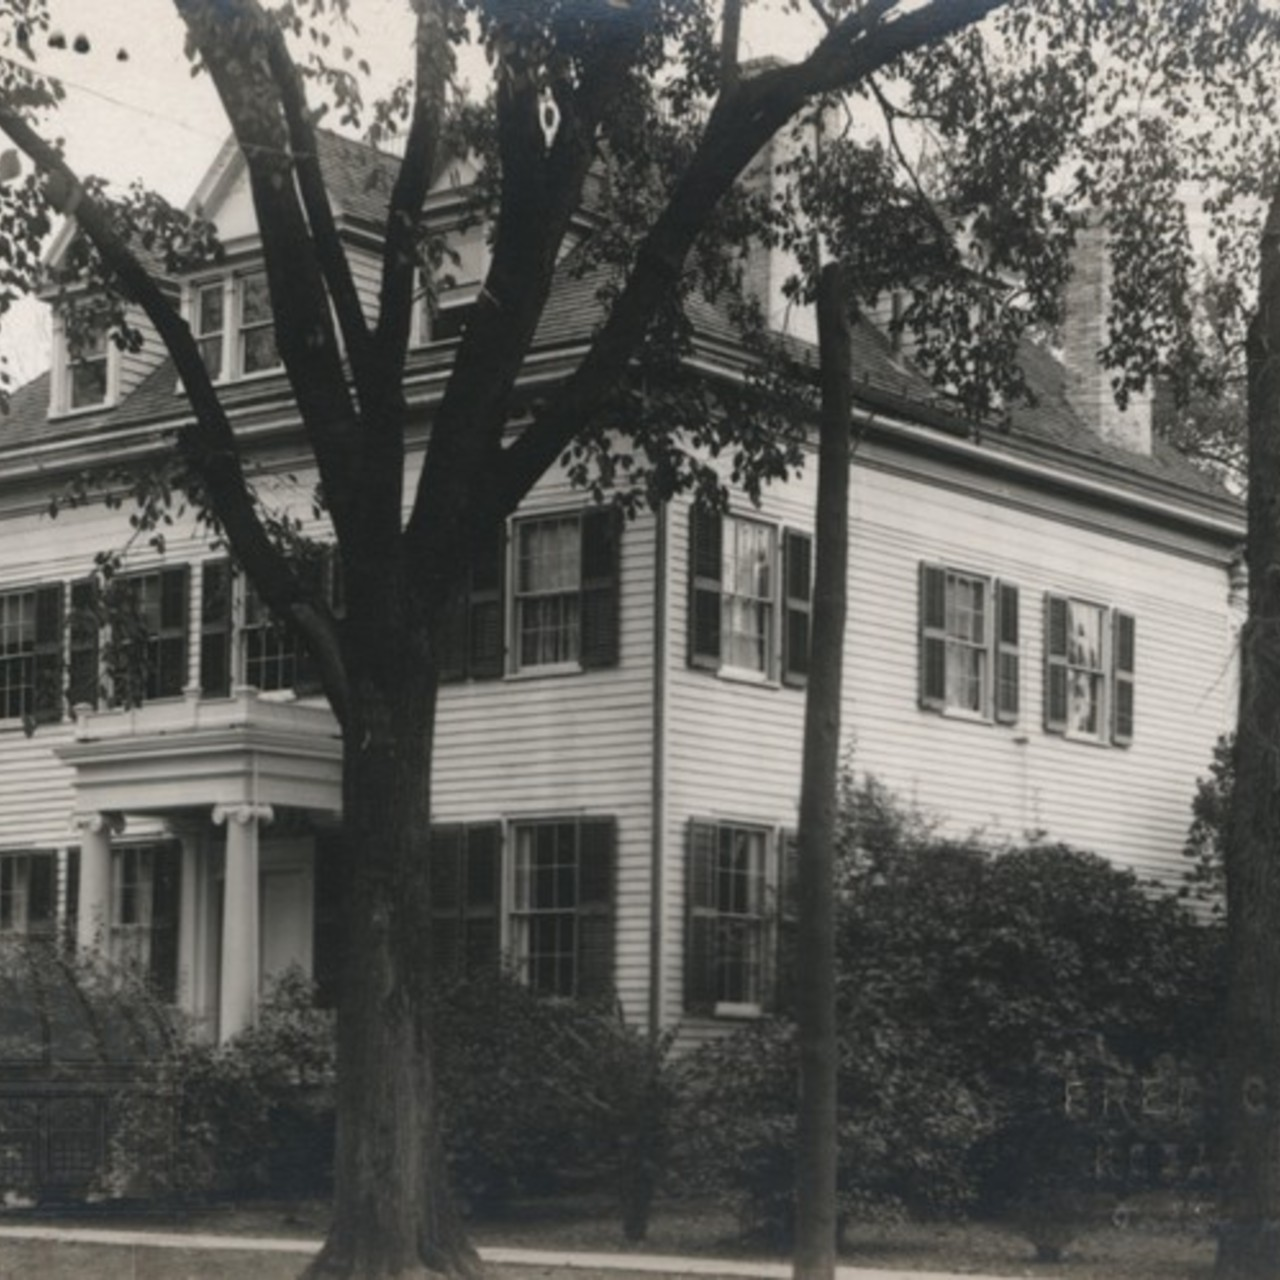 The Charles L. Black House